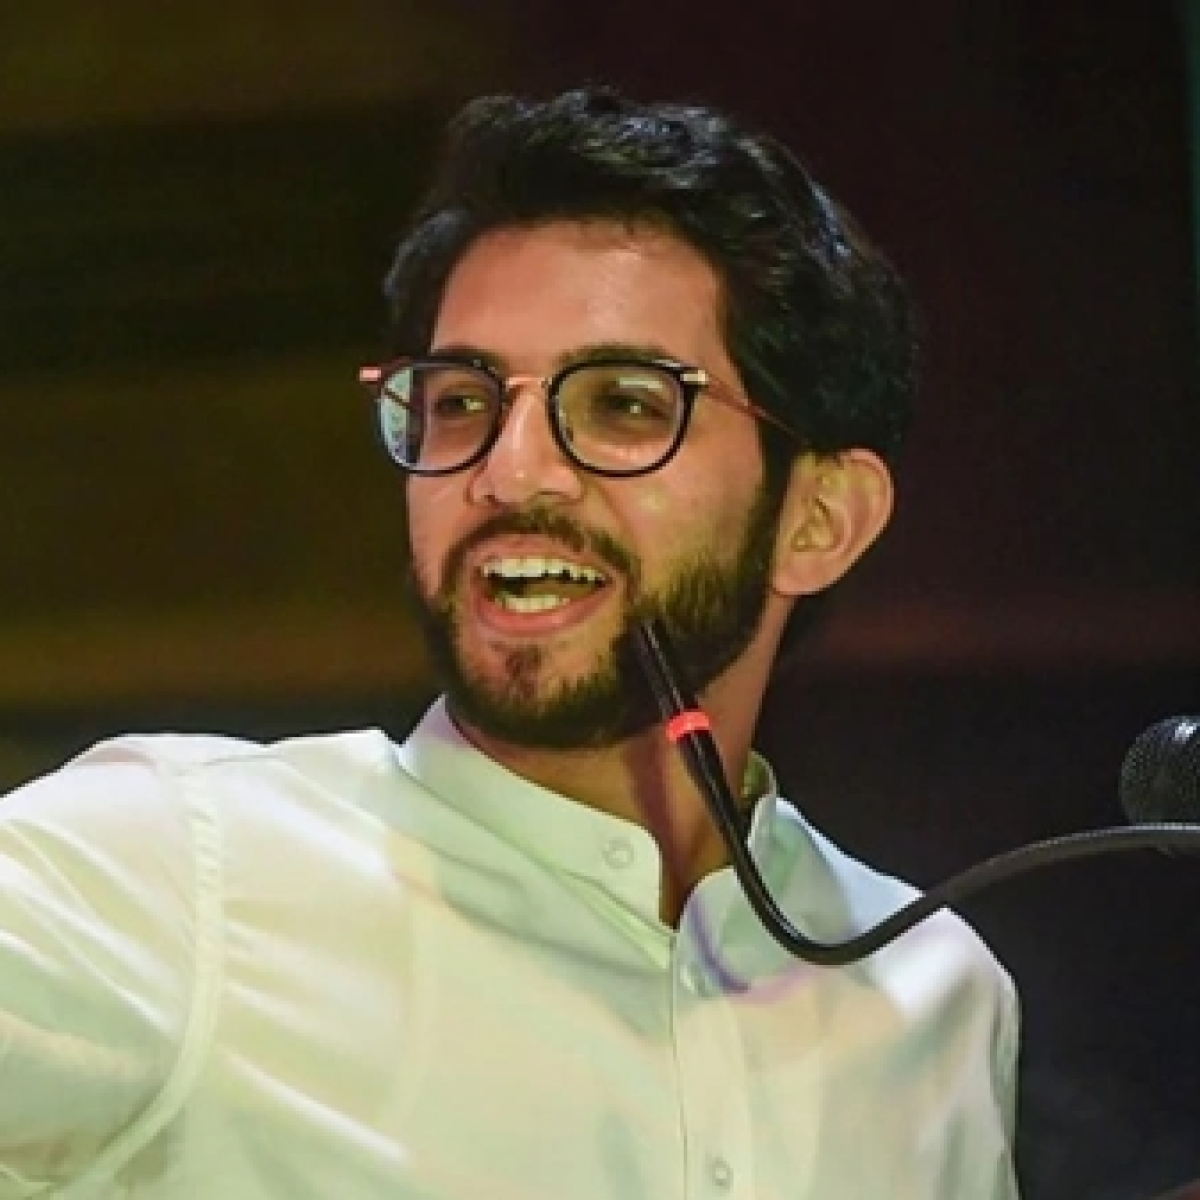 Will Aaditya Thackeray share stage at anti-CAA event with Umar Khalid and Javed Akhtar?